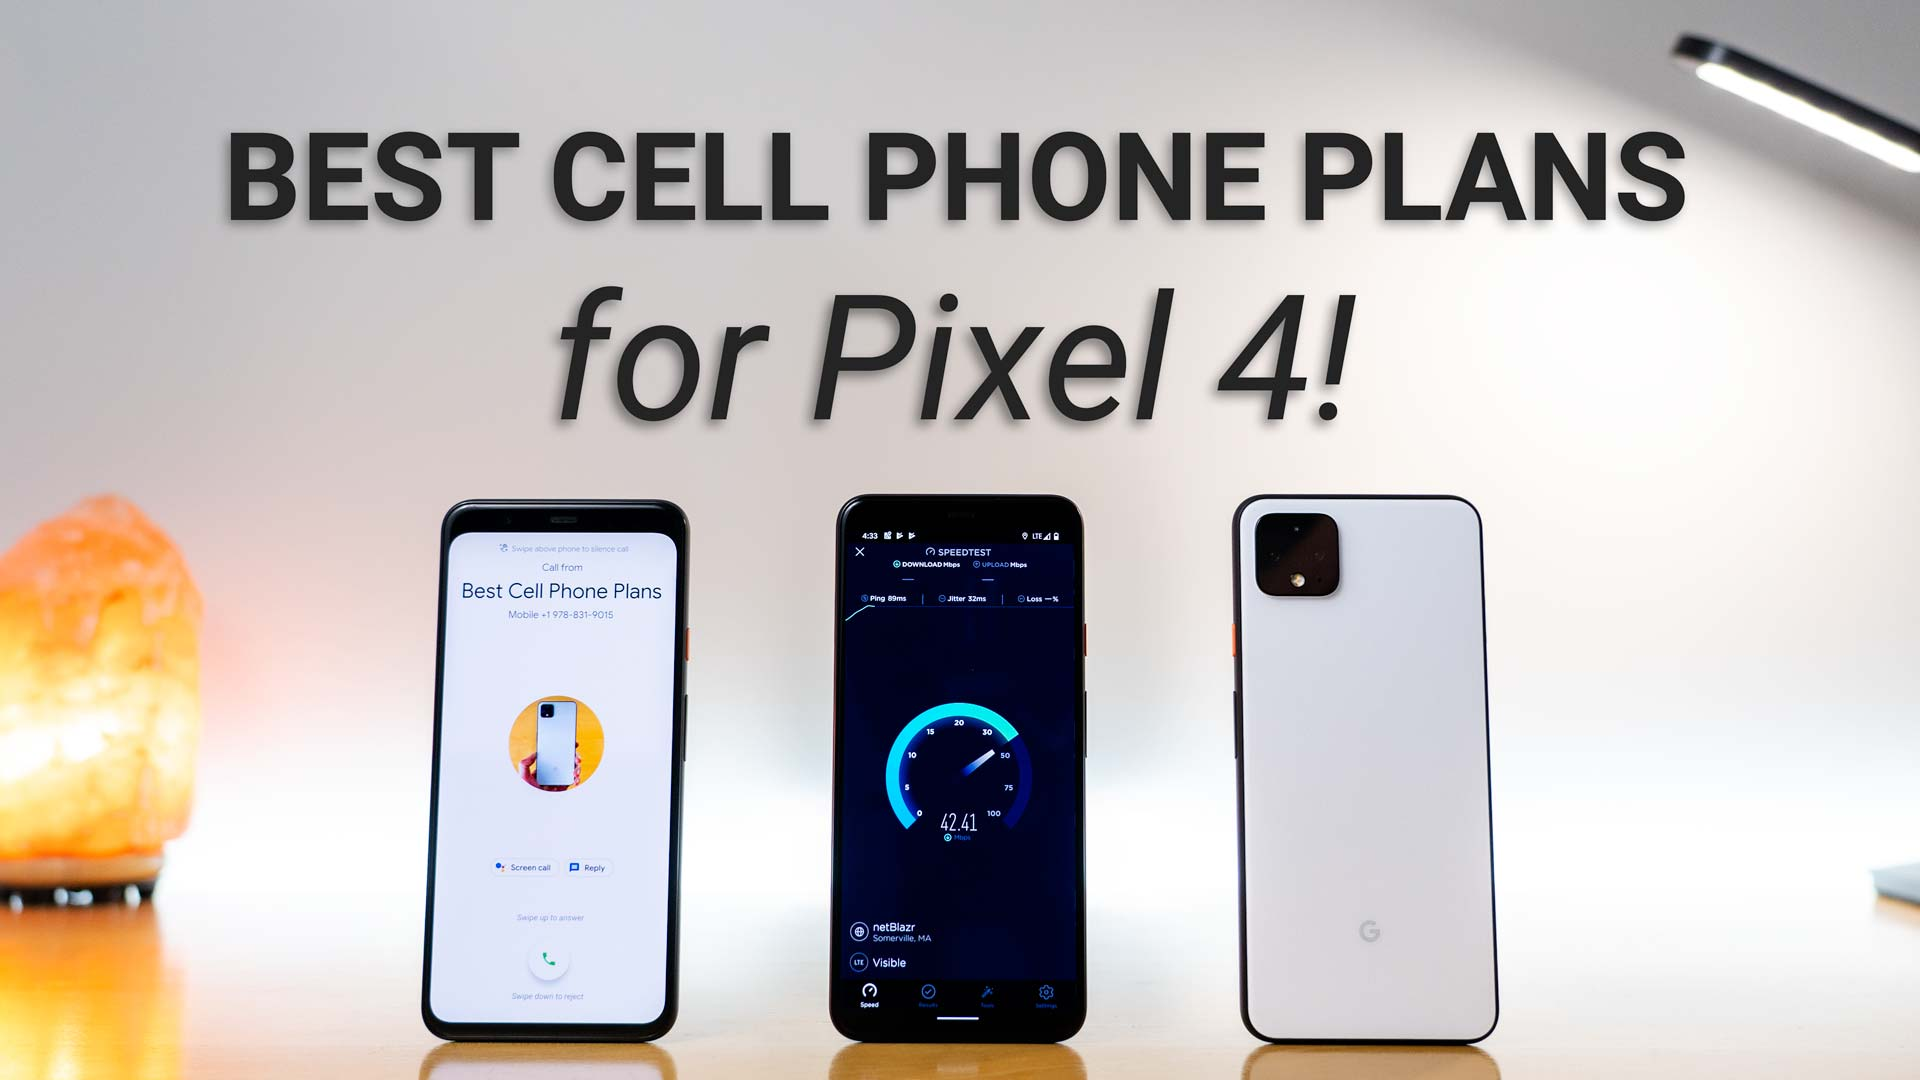 image of pixel 4 receiving a call, performing a data speed test, and of the back of the phone